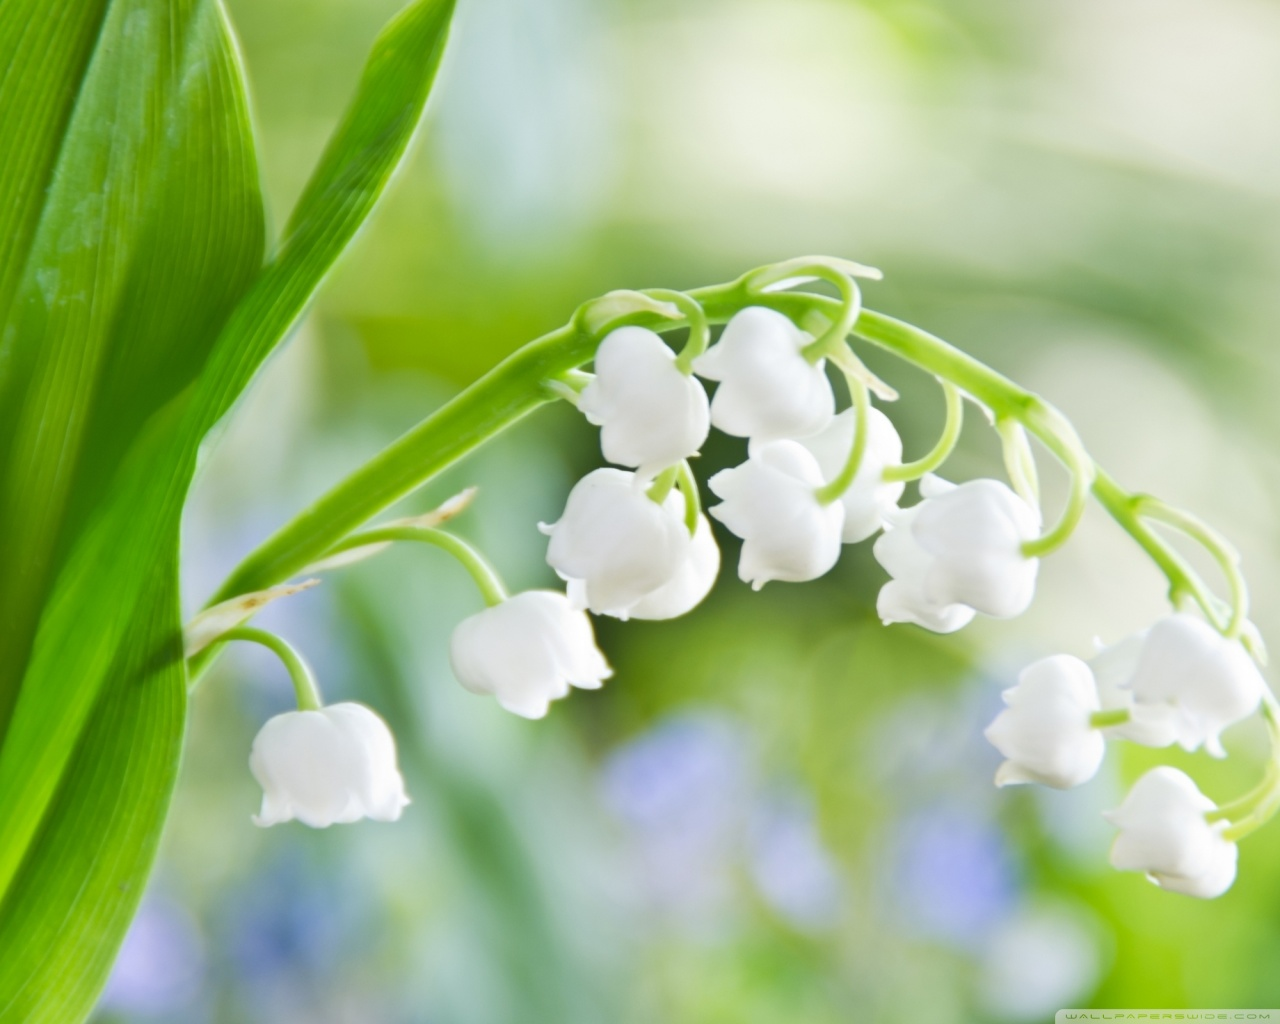 Lily Of The Valley High Quality Background on Wallpapers Vista